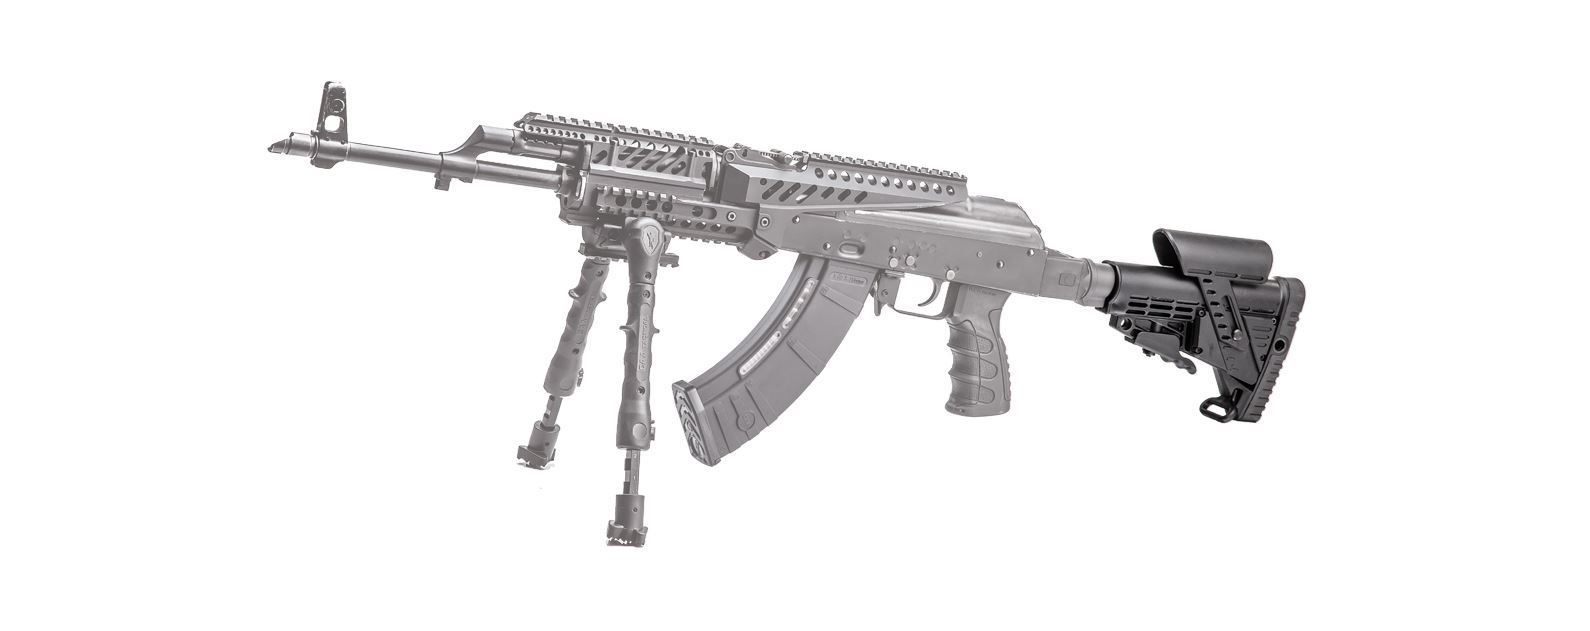 CBSCP-Integrated Stock and Adjustable Cheek Rest